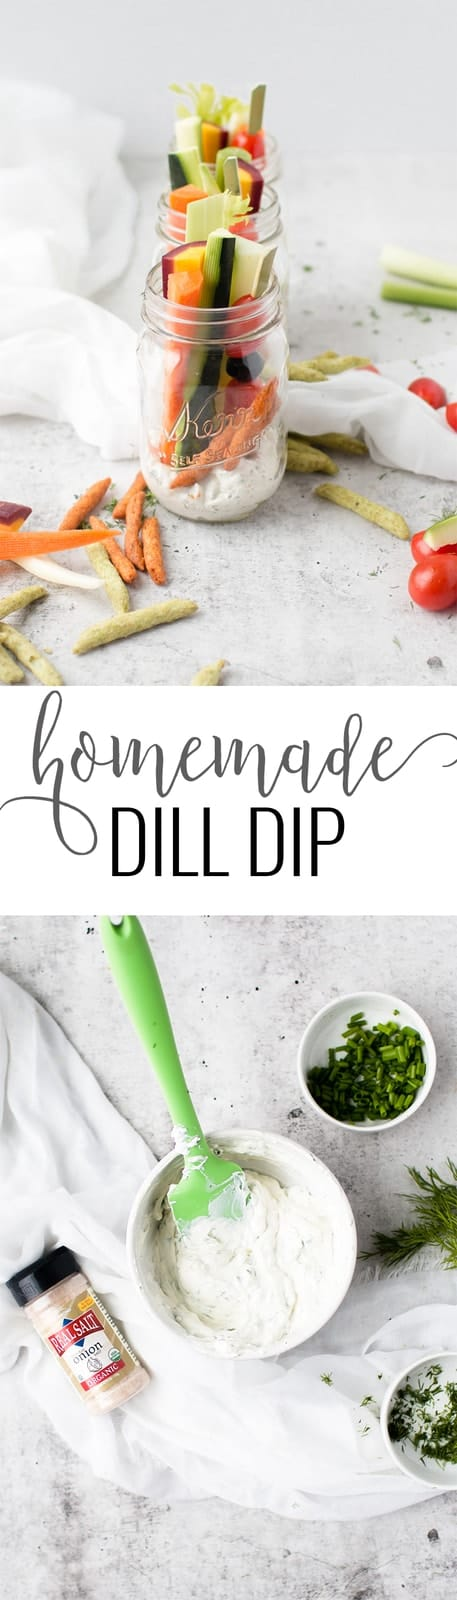 A collage image of a Homemade Dill Dip